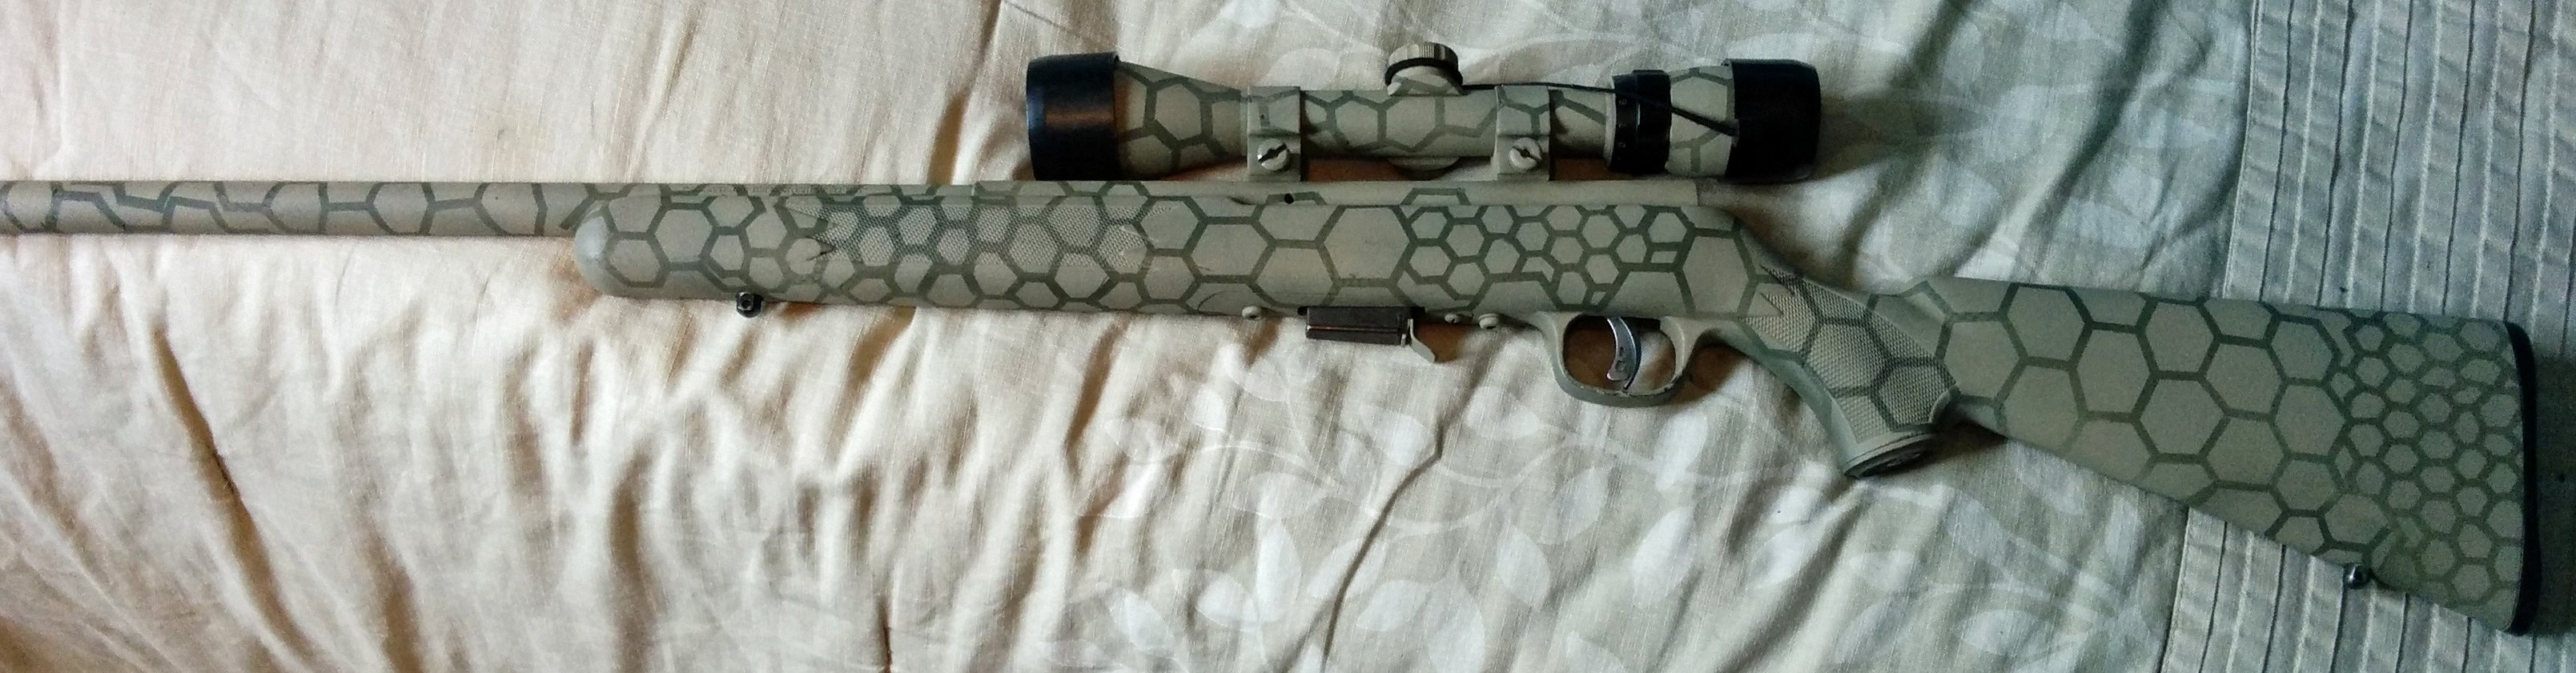 Diy Too Much Time On Your Hands Paint Gun Alloutdoor How To Build Magnetic Heres An Overall Pic Of The Hexagon Painted Rifle